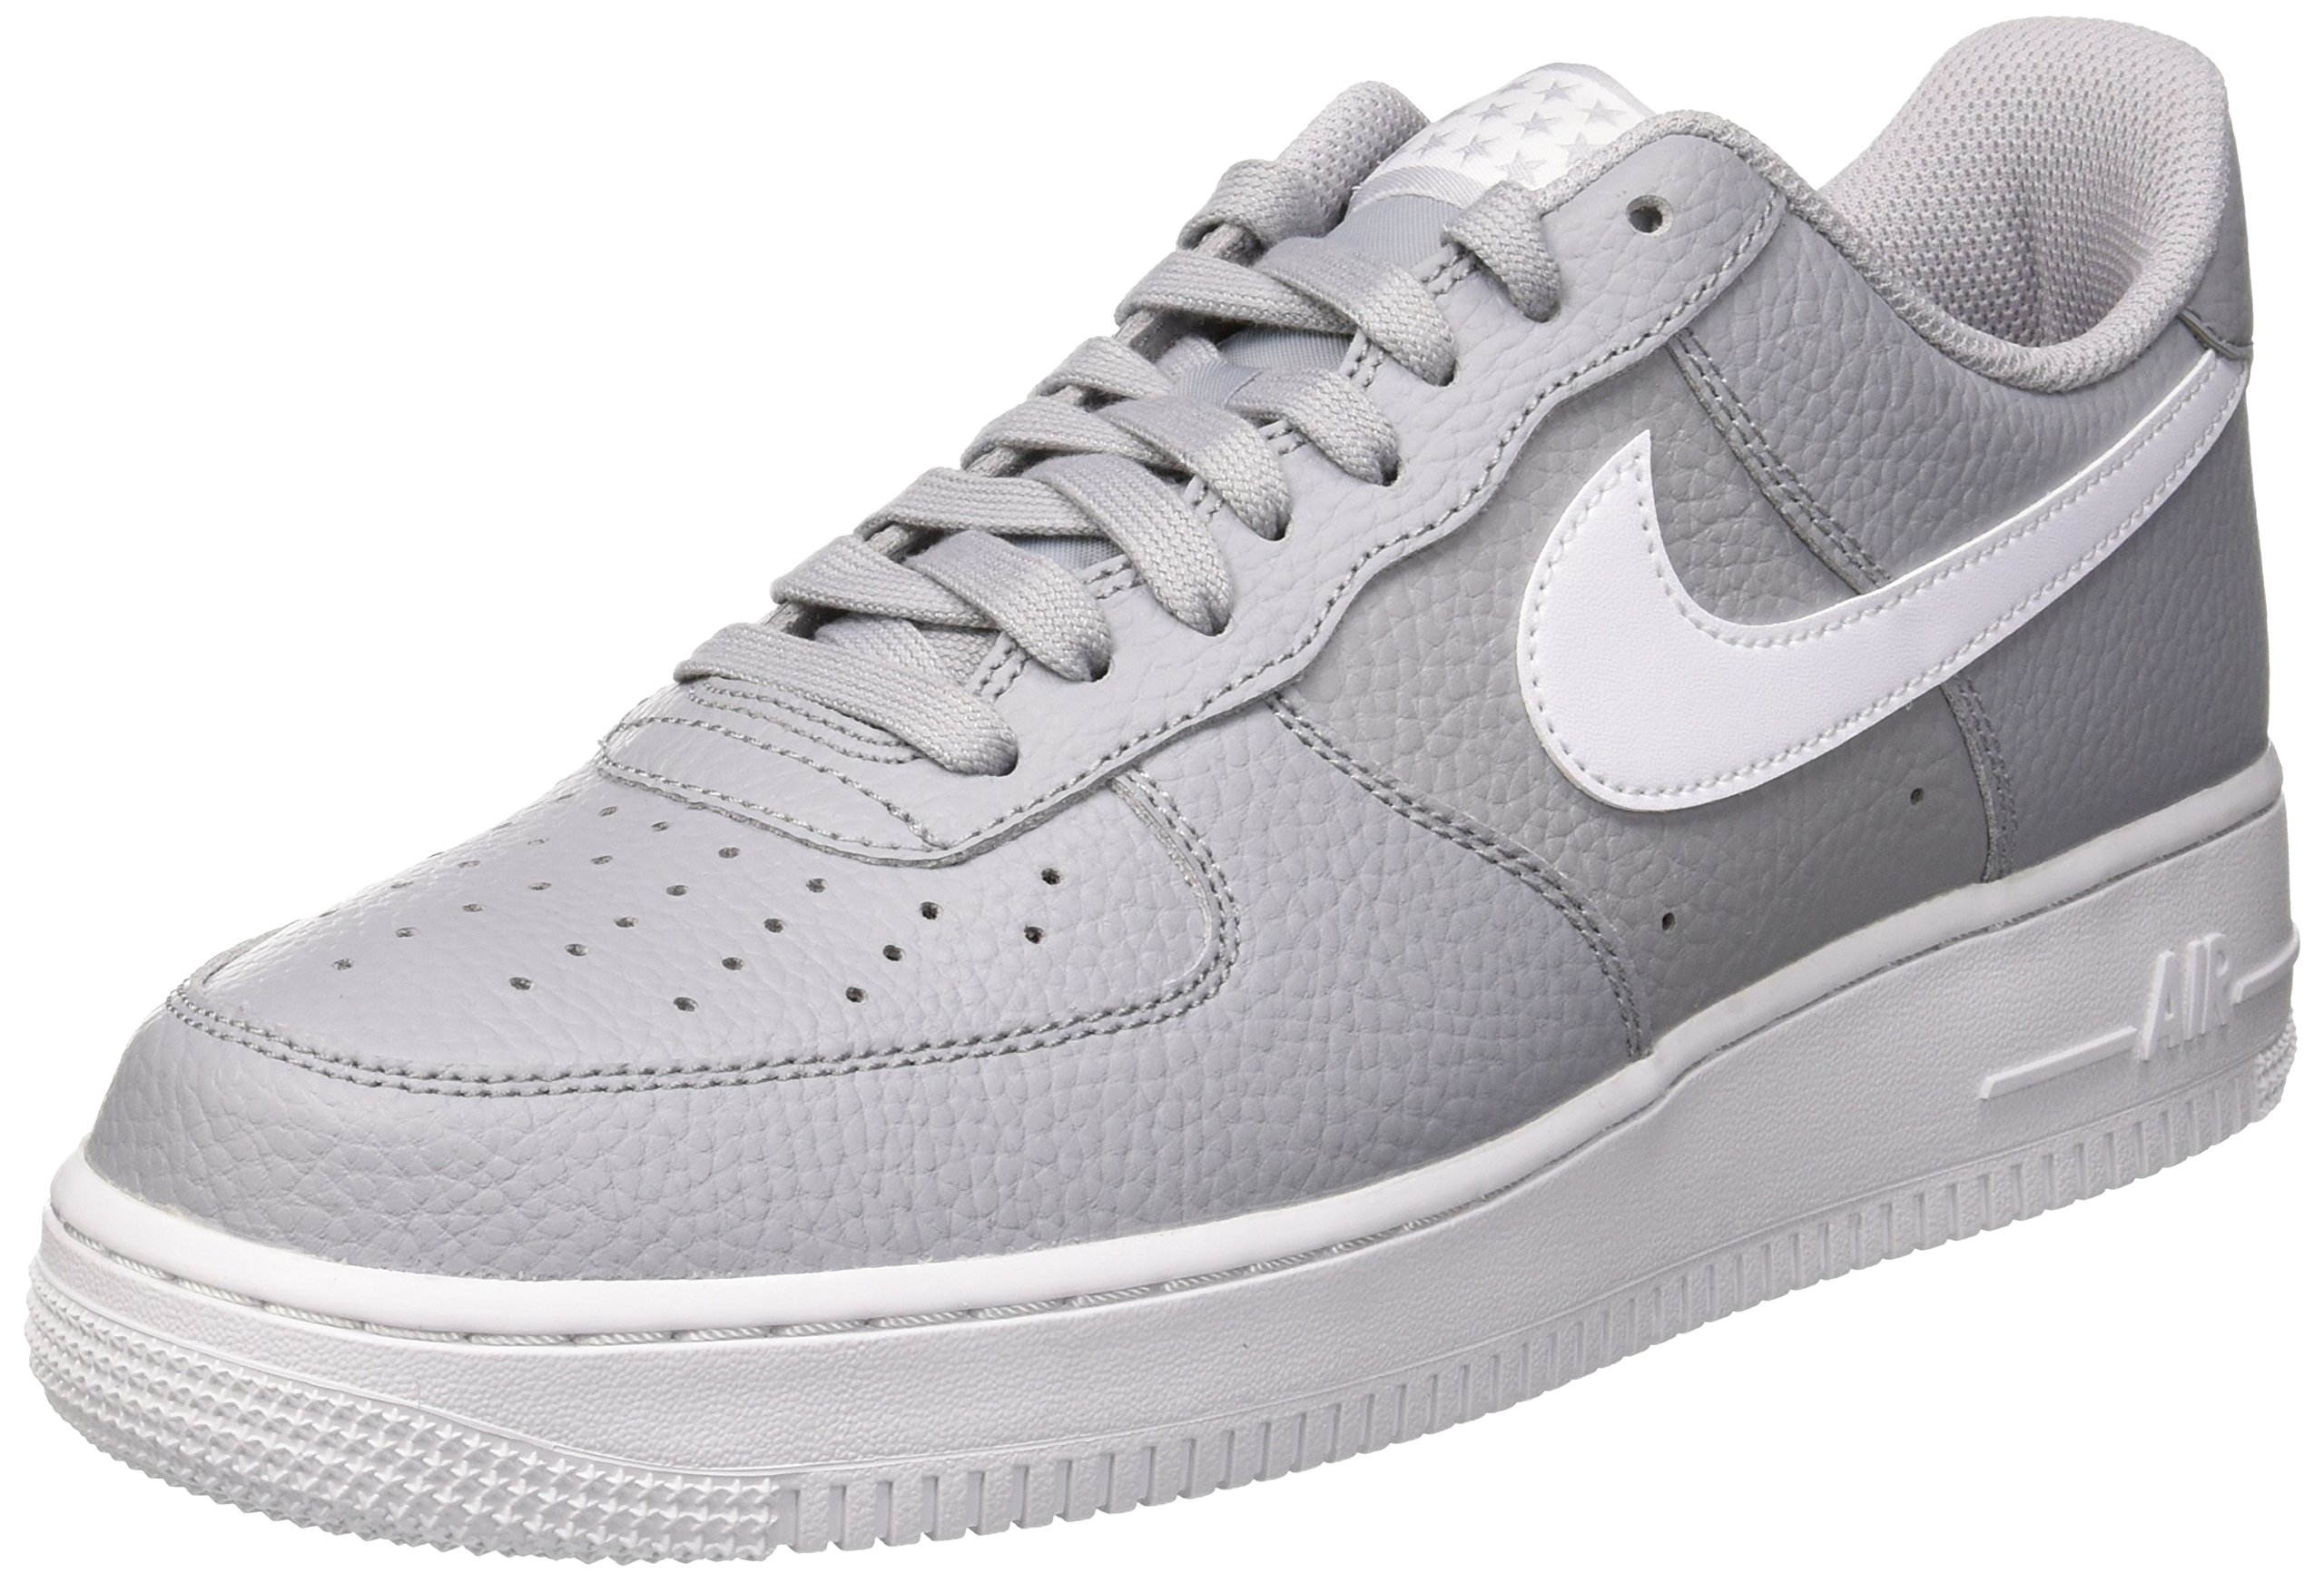 low priced 9ebfa bc317 Galleon - NIKE Men s Air Force 1  07 Gymnastics Shoes, Black (Wolf Grey  White 013), 10.5 UK 11 UK